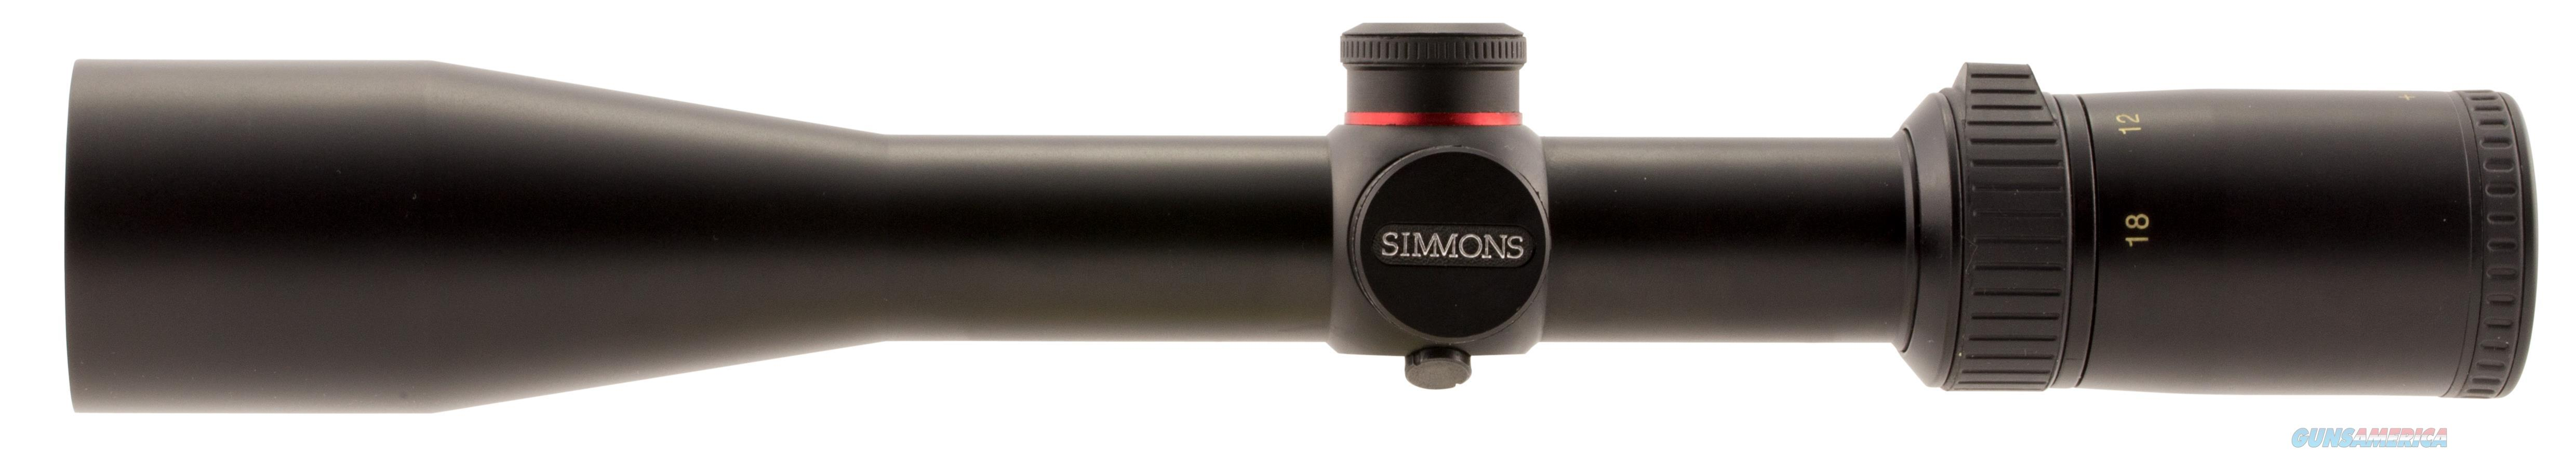 Simmons 654518 Predator/Varmint 4.5-18X 44Mm Obj 19.5-5 Ft @ 100 Yds Fov 30Mm Tube Black Matte Truplex 654518  Non-Guns > Scopes/Mounts/Rings & Optics > Rifle Scopes > Variable Focal Length